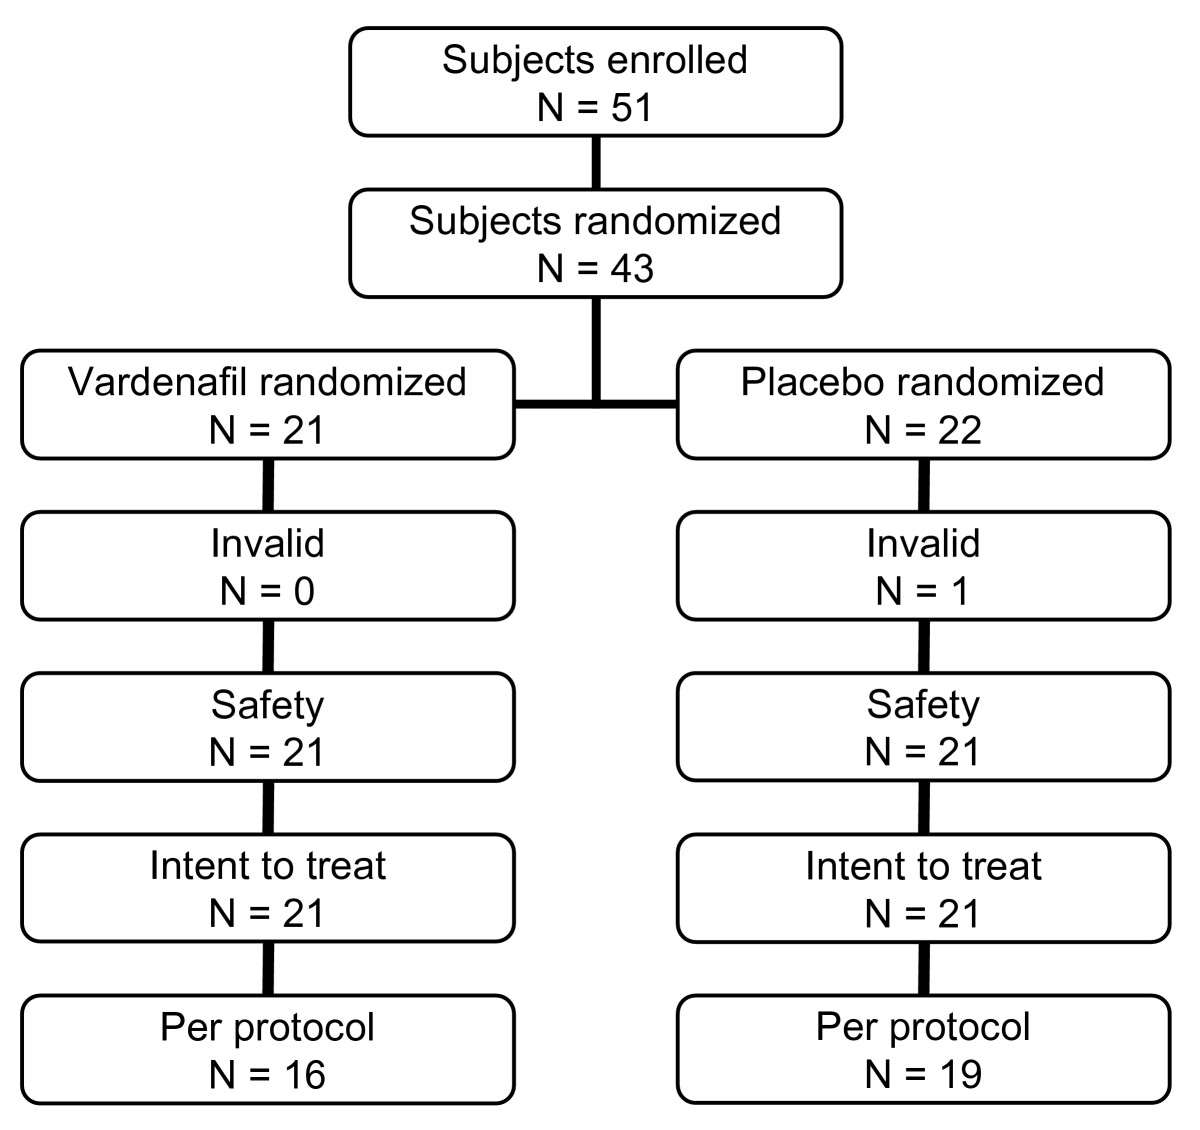 http://static-content.springer.com/image/art%3A10.1186%2F1477-5751-8-3/MediaObjects/12952_2008_Article_70_Fig1_HTML.jpg